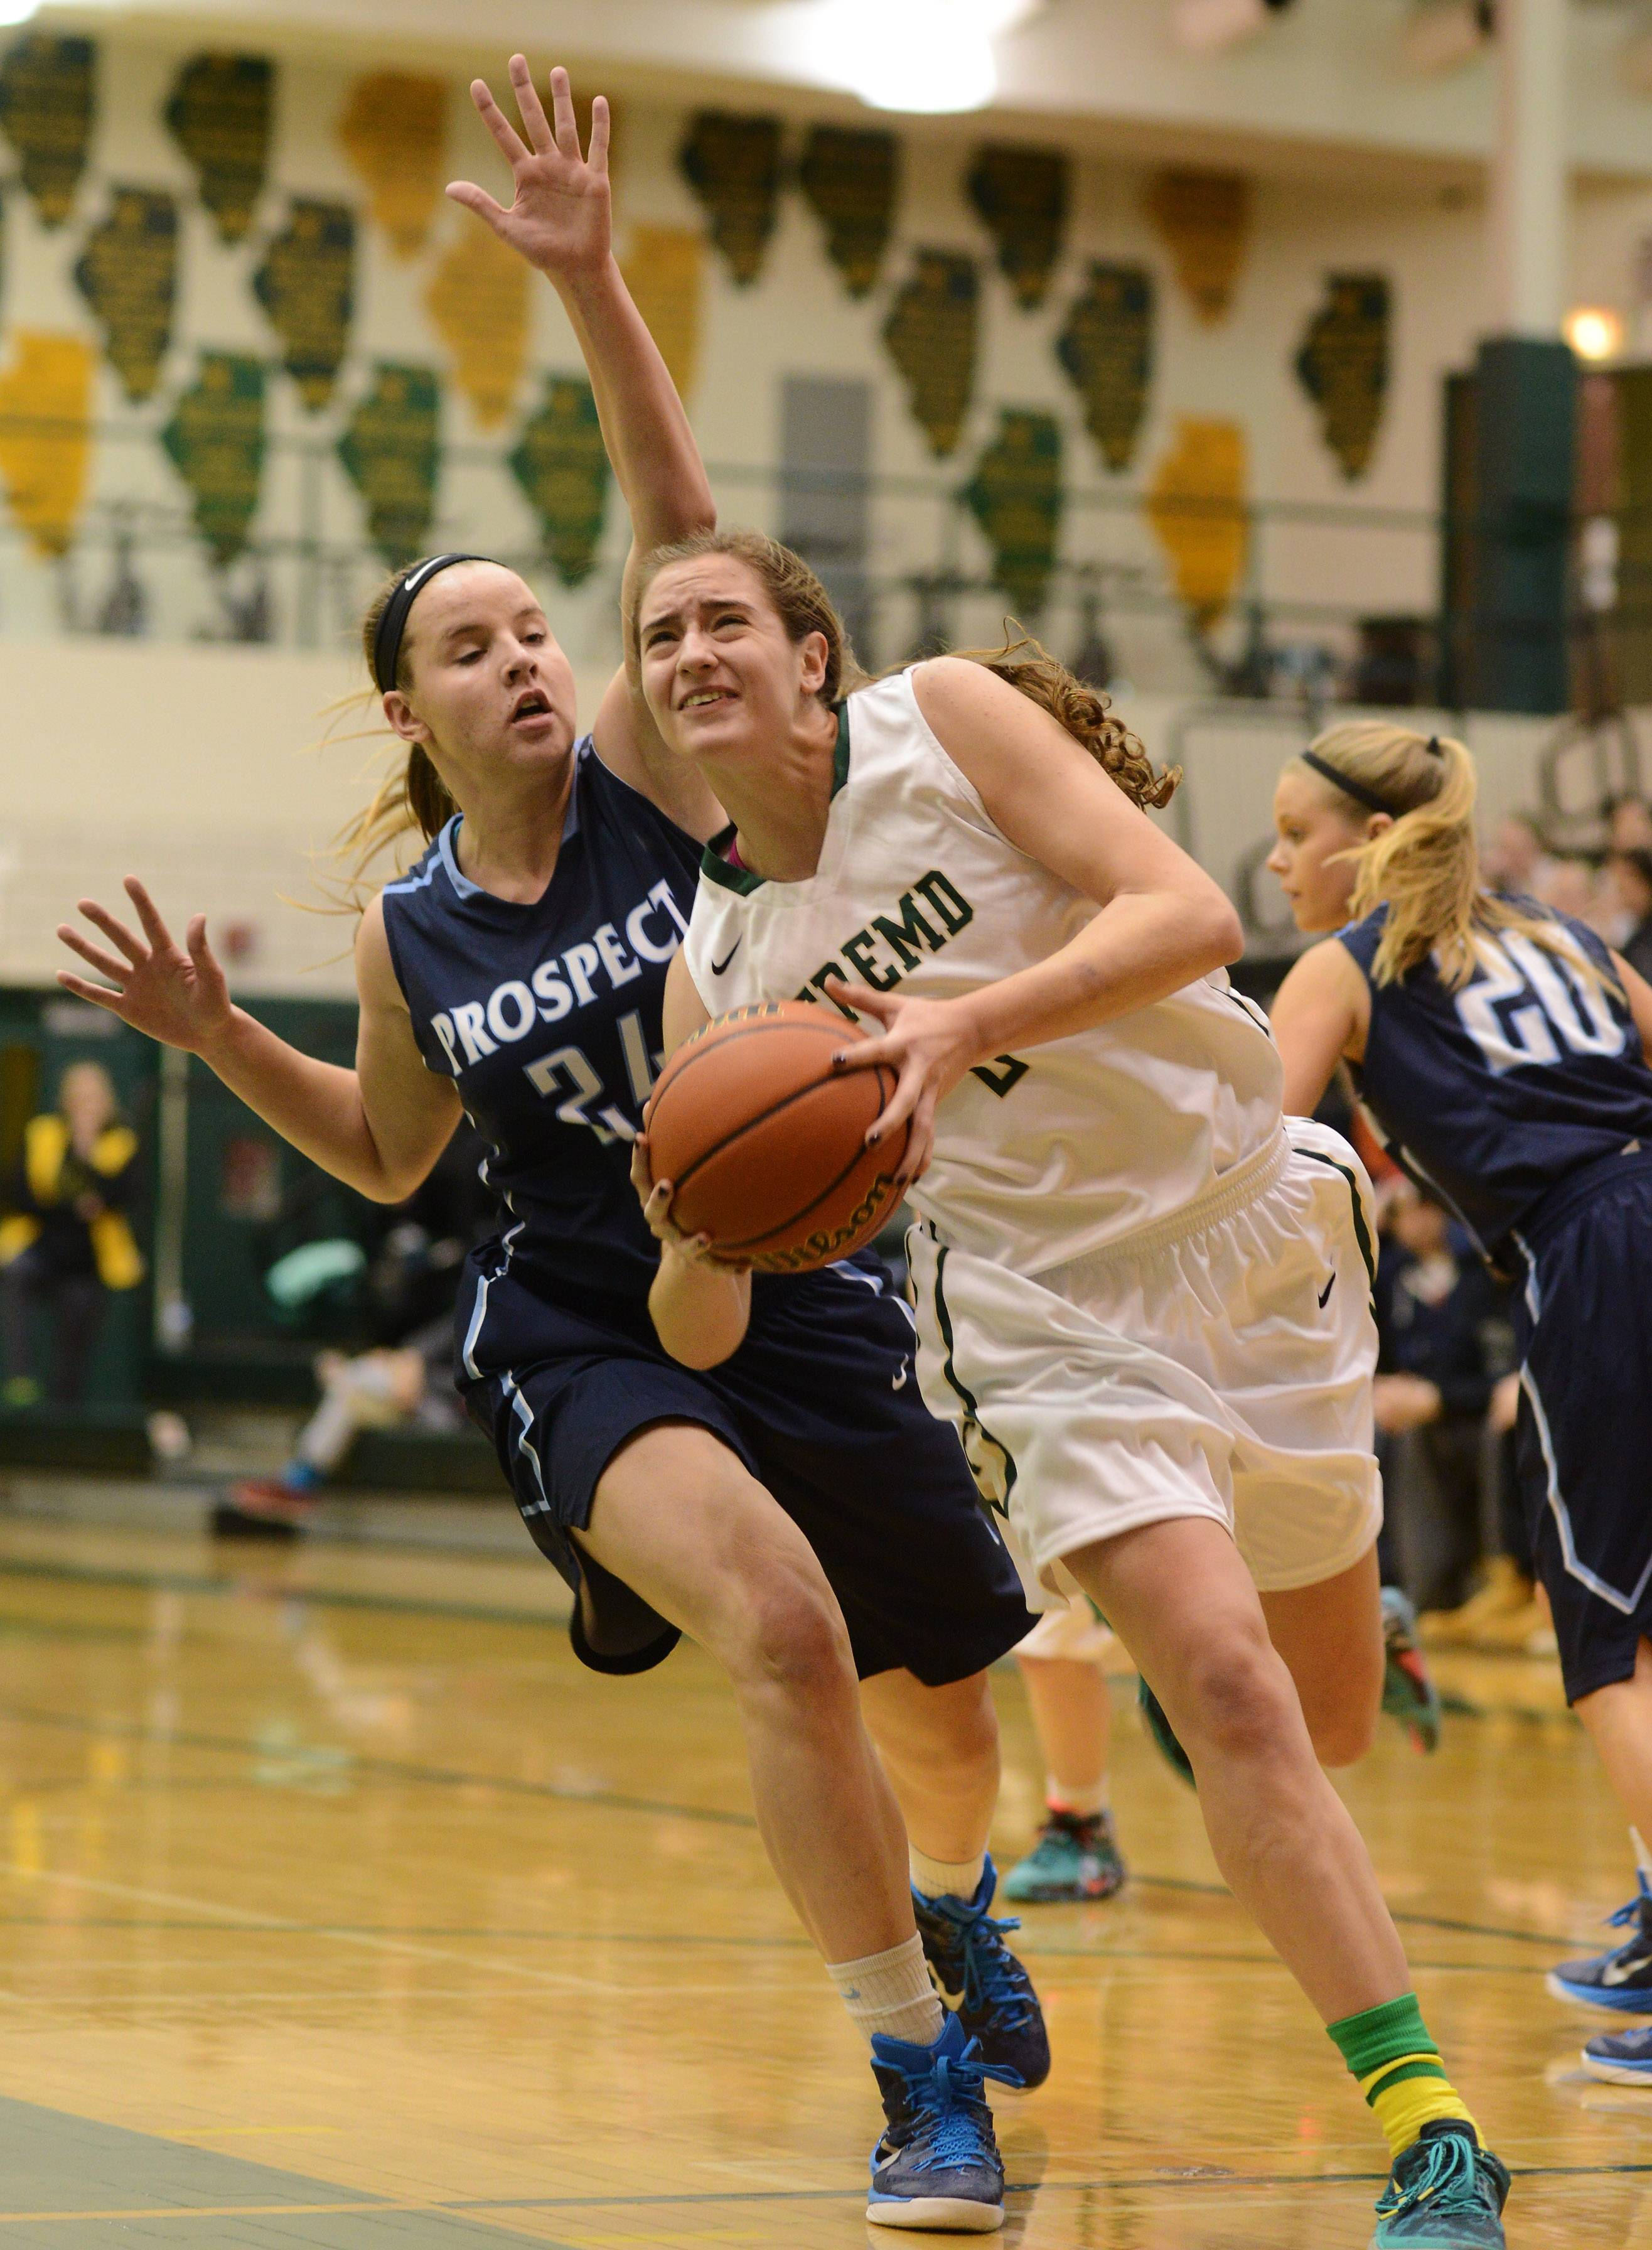 Fremd's Haley Gorecki drives to the basket while being pursued by Prospect's Catherine Sherwood.